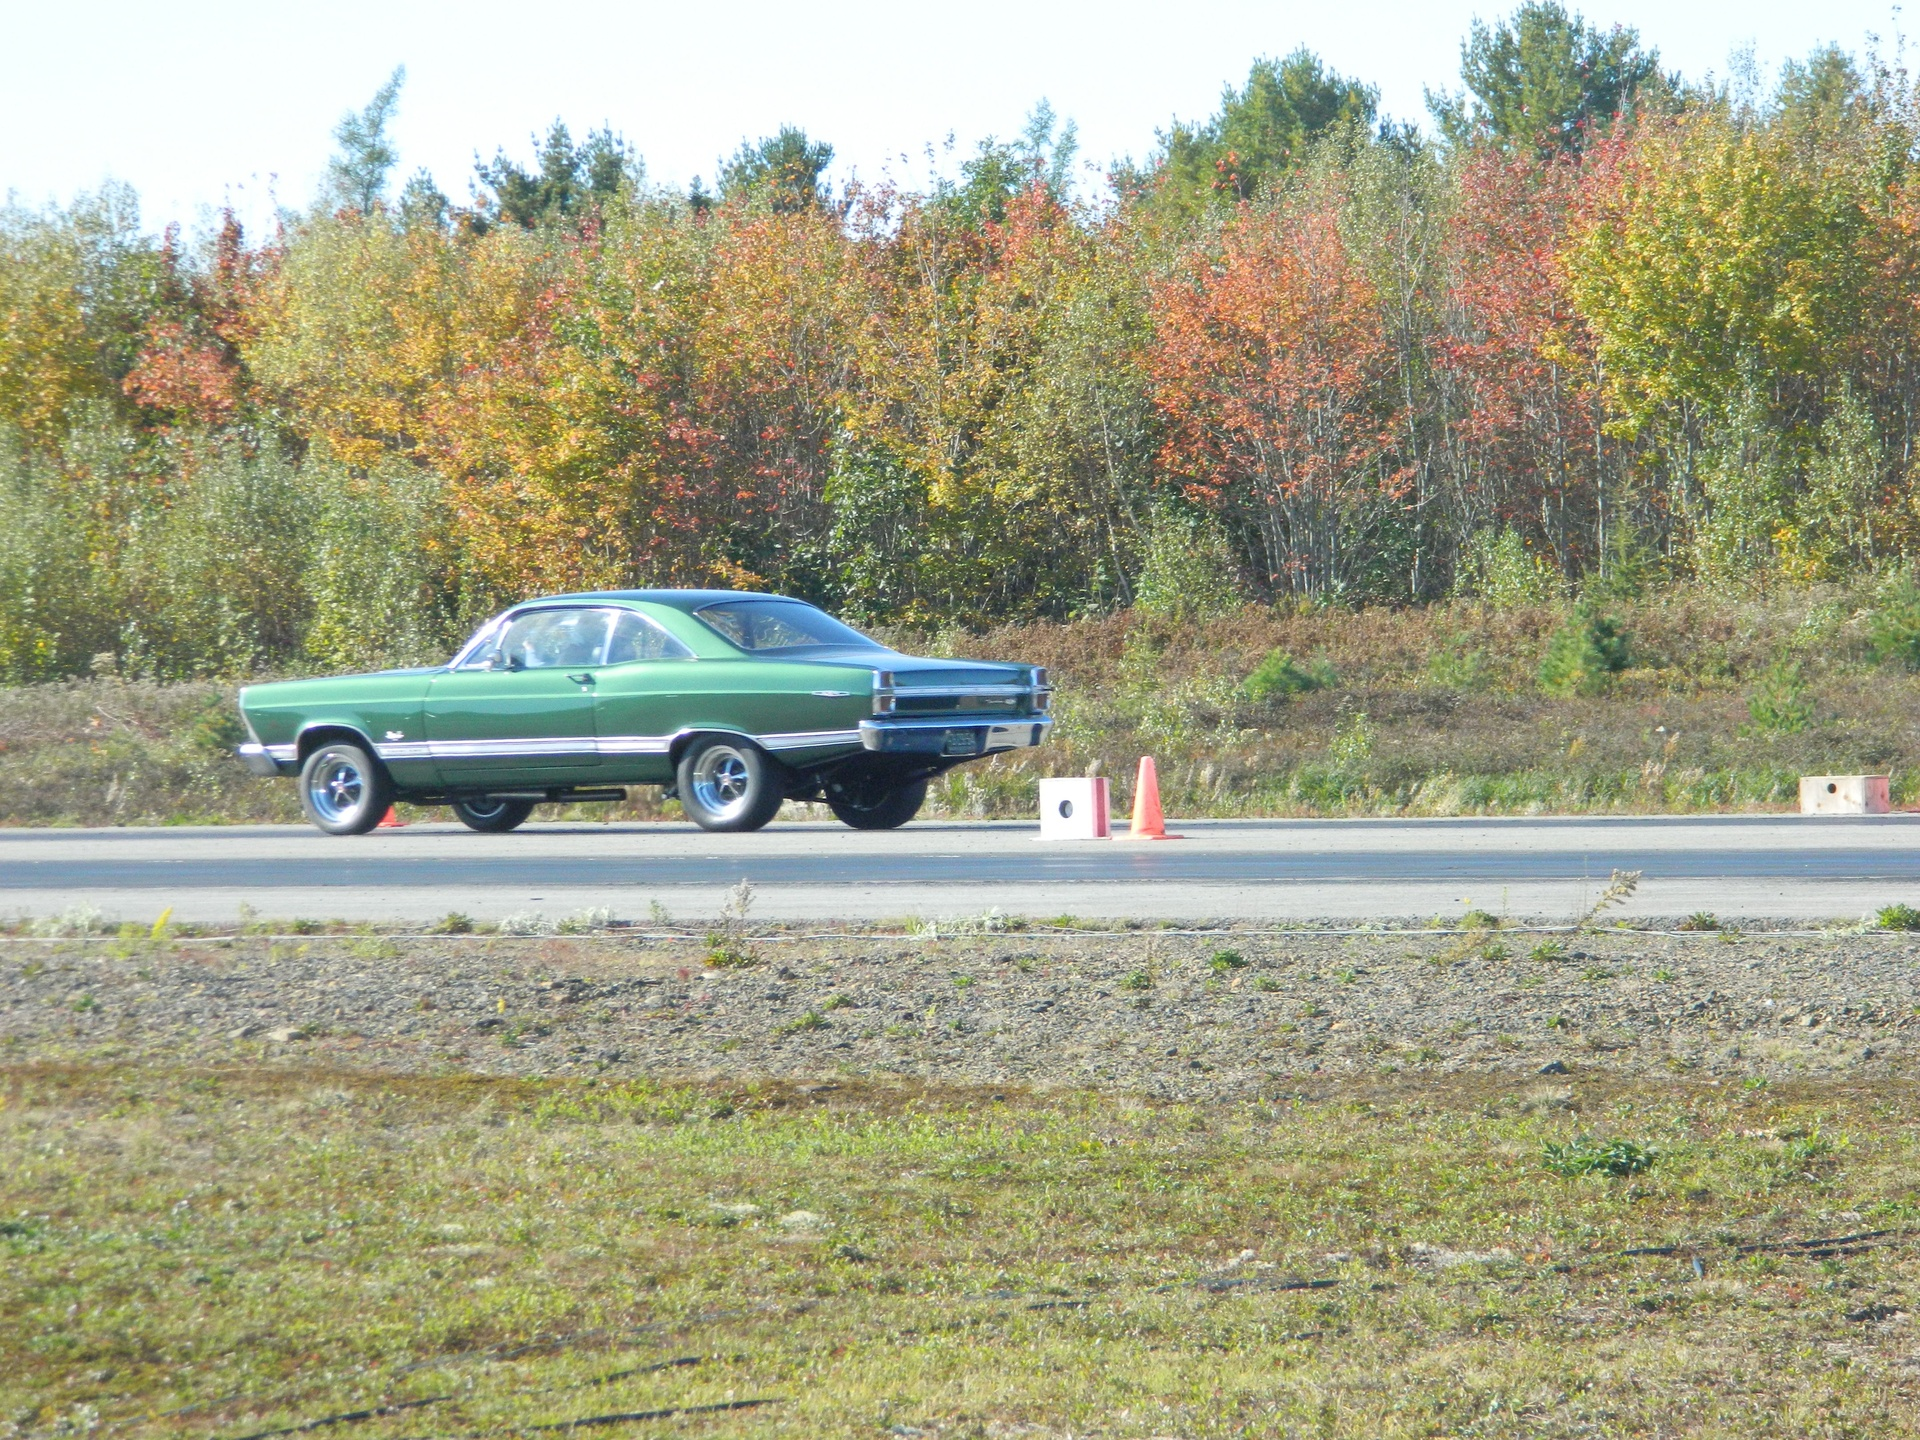 67 Fairlane making a run down the track.